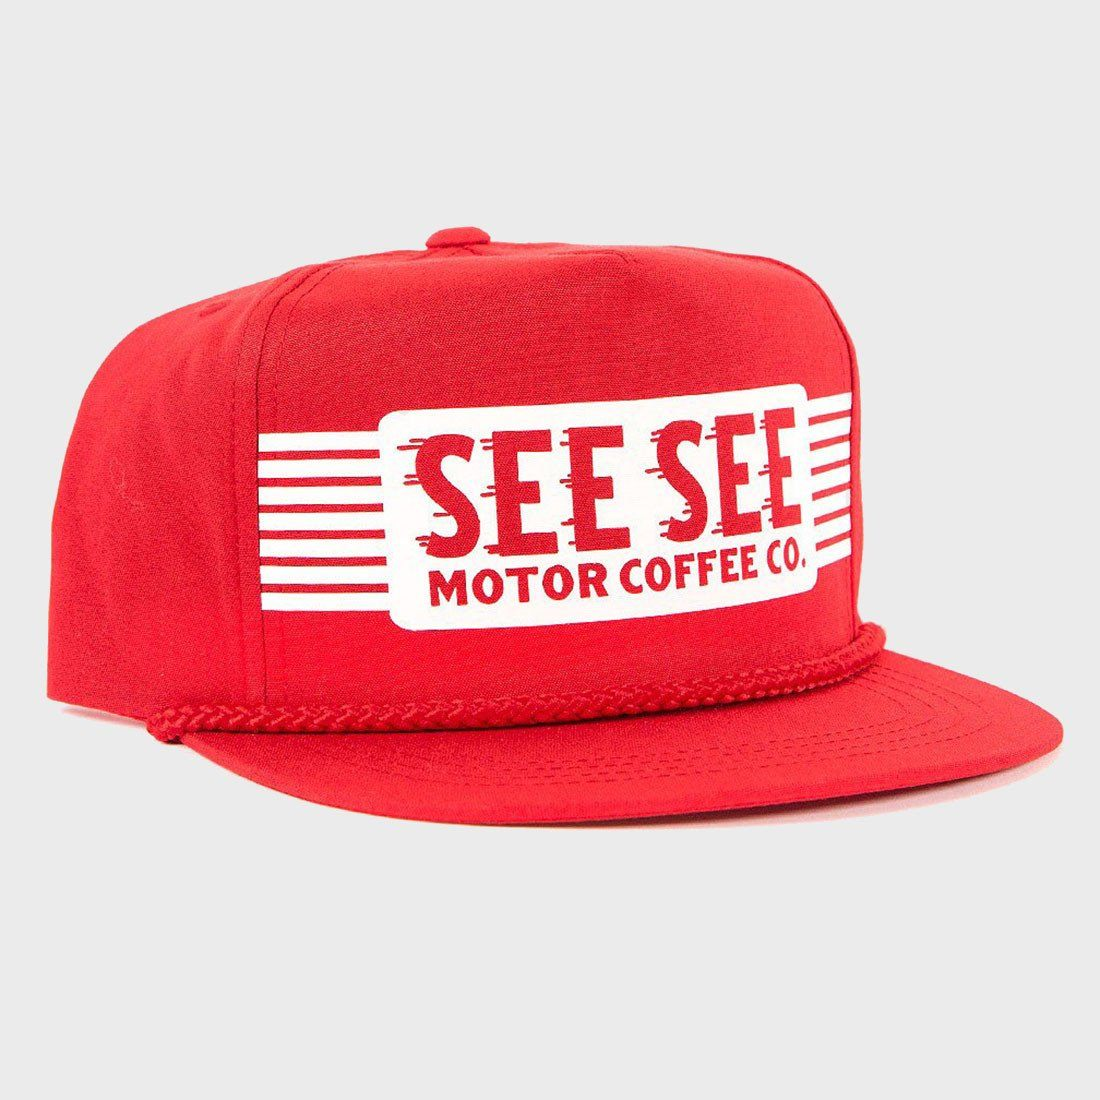 See See Motorcycles Oil Can Snapback Hat Red